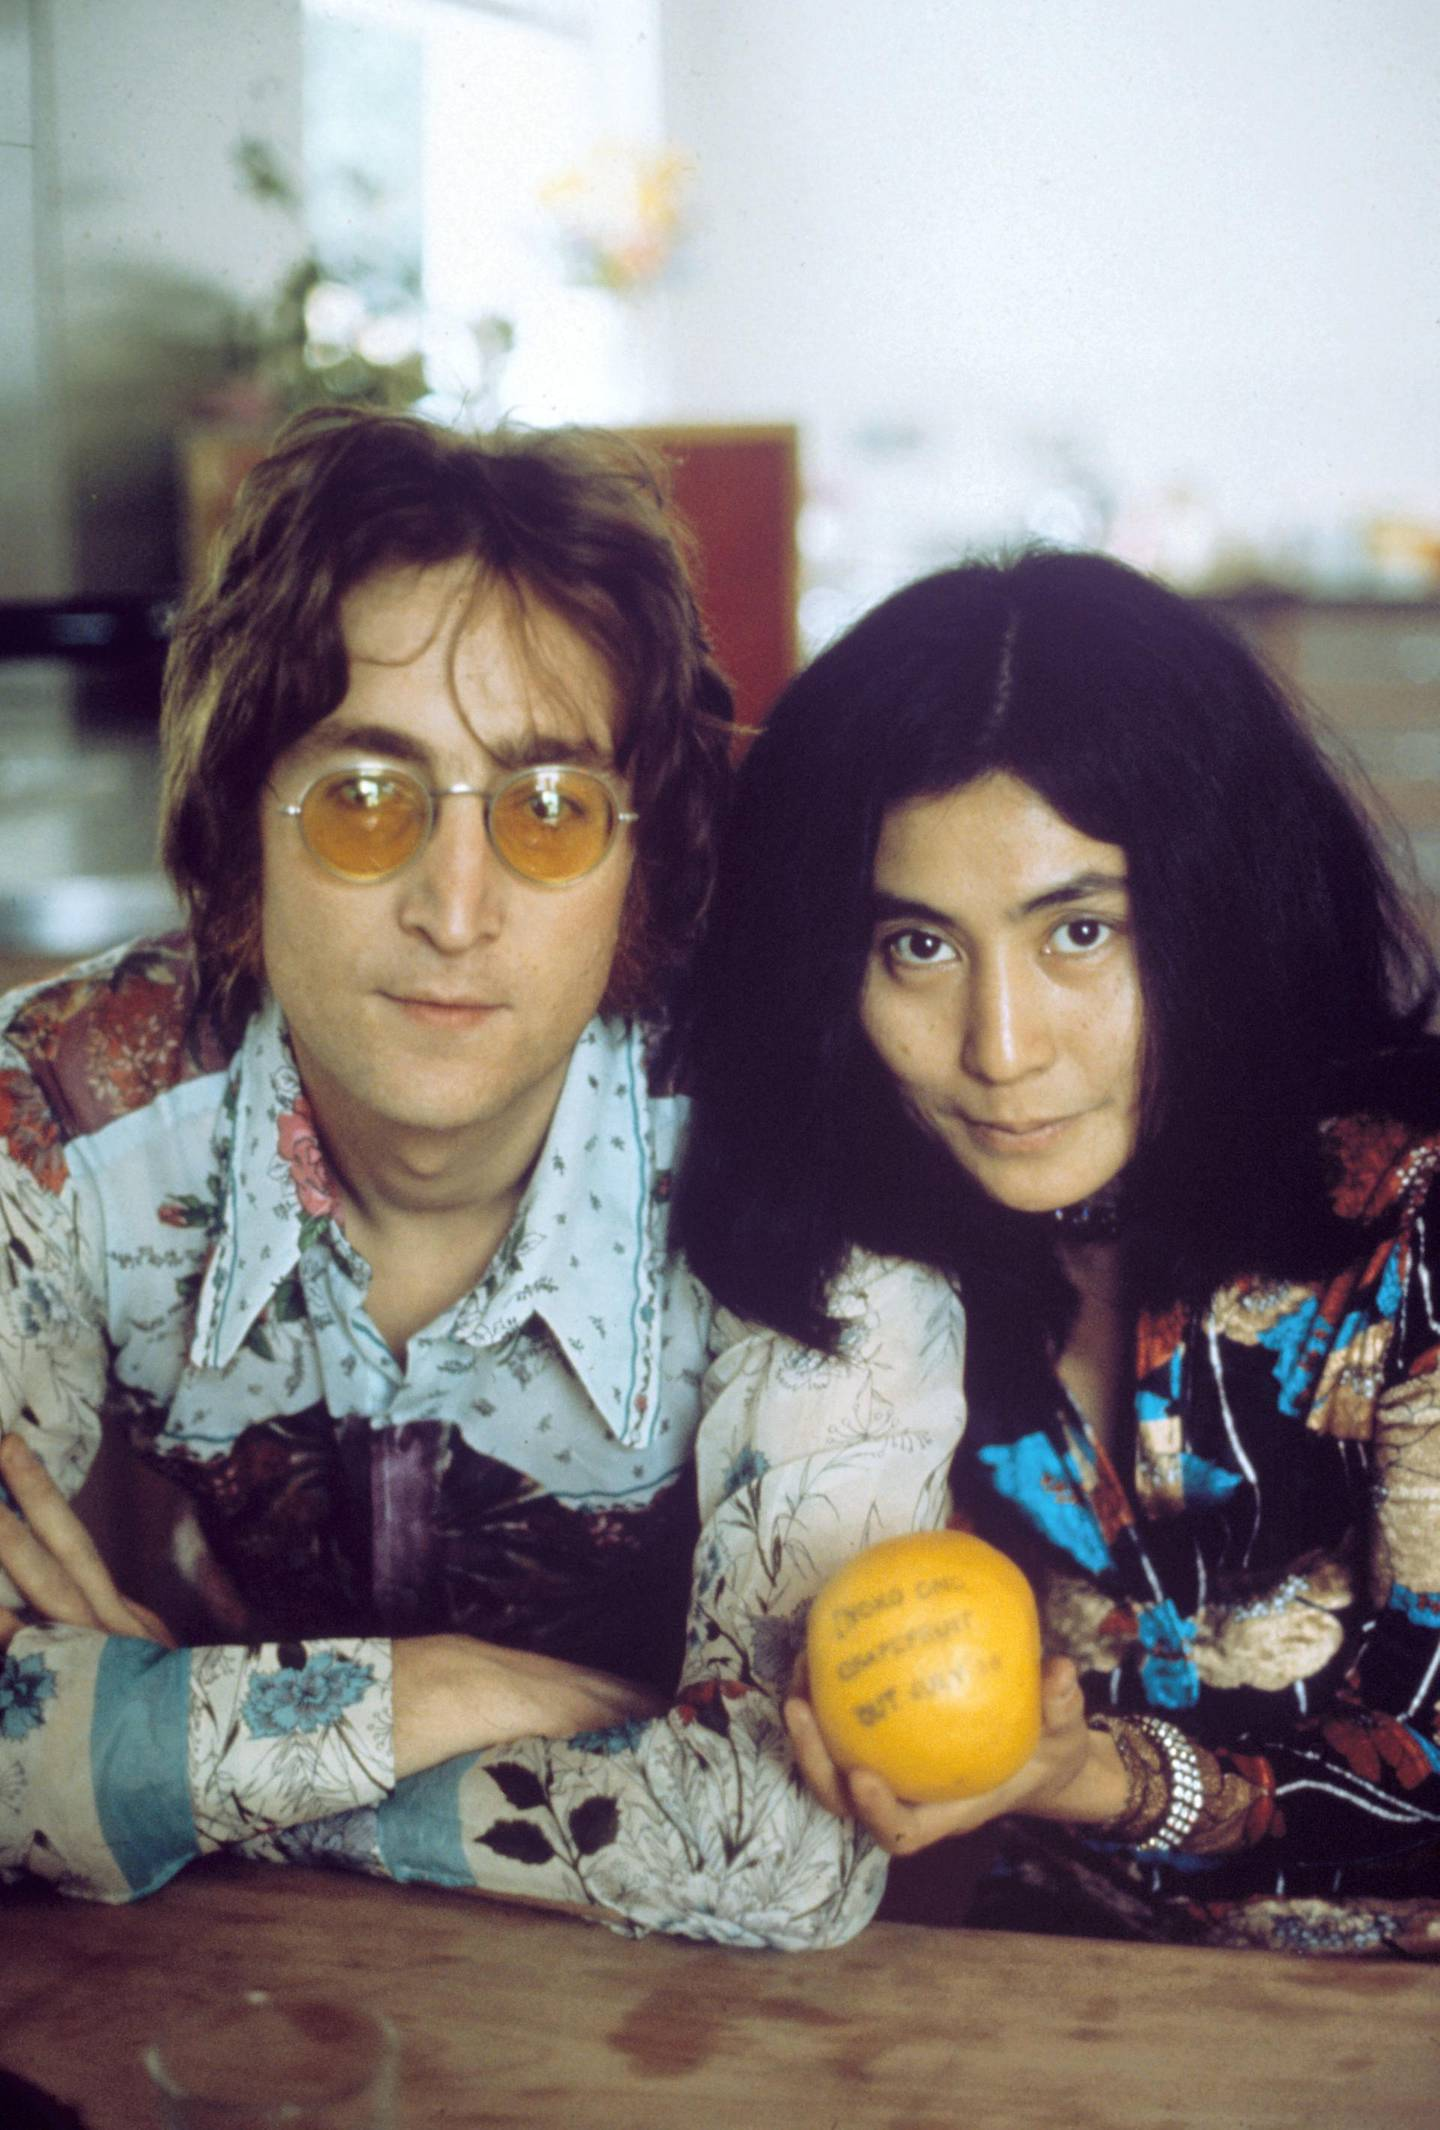 Mandatory Credit: Photo by George Konig/REX/Shutterstock (104803e) JOHN LENNON AND YOKO ONO AT TITTENHURST PARK, THEIR RESIDENCE BETWEEN 11/08/69 AND 30/08/71 IN SUNNINGDALE, NR ASCOT BERKSHIRE John Lennon and Yoko Ono at their home at Tittenhurst Park, Britain - 1970